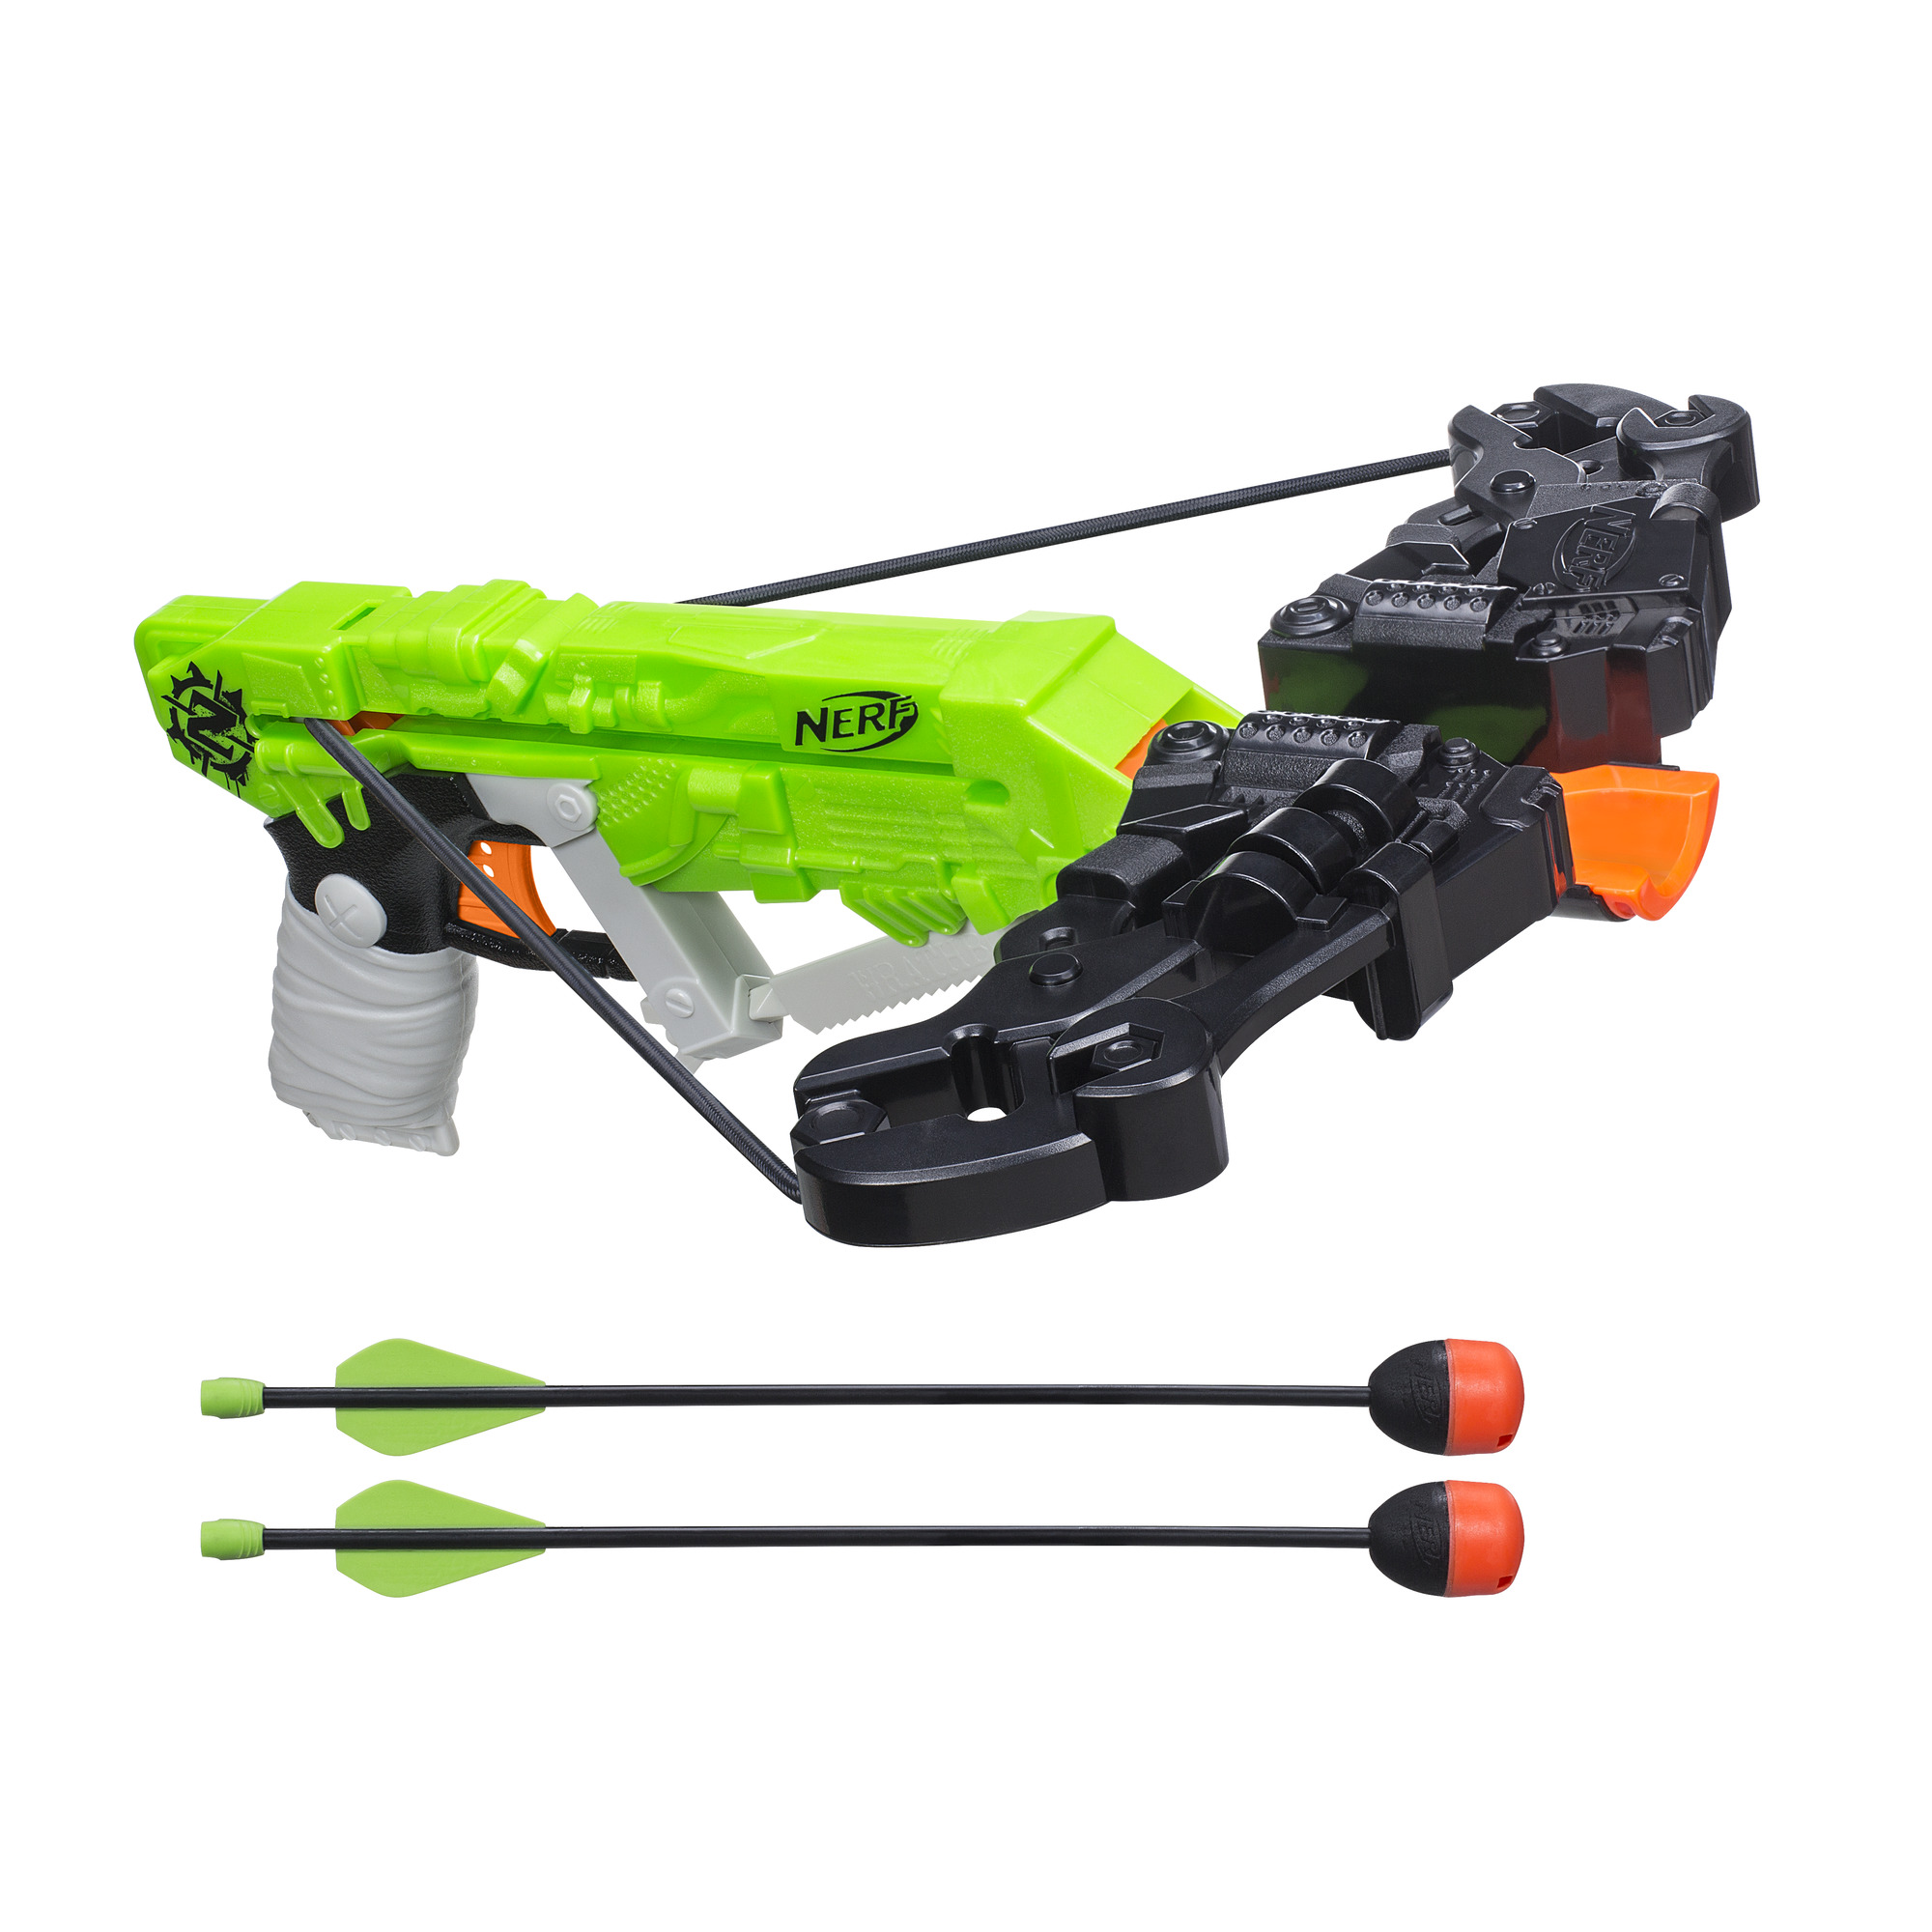 Nerf Zombie Strike Wrathbolt by Hasbro Inc.